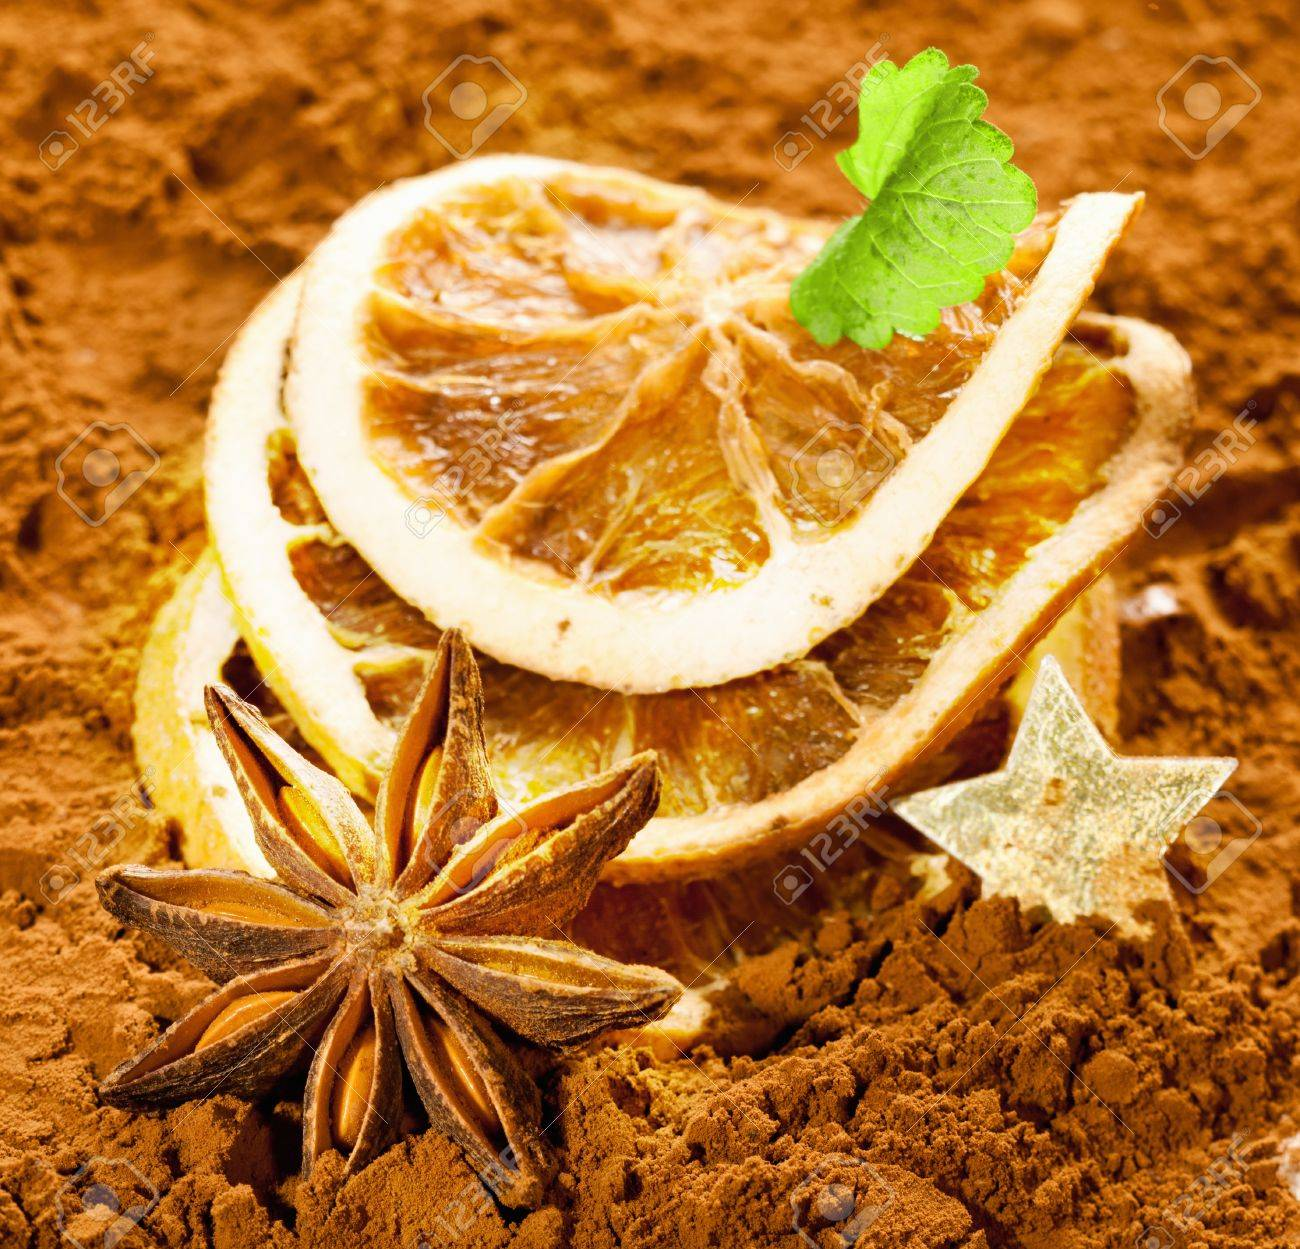 Dried orange slices with anise and a golden star on a brown background Stock Photo - 12640219